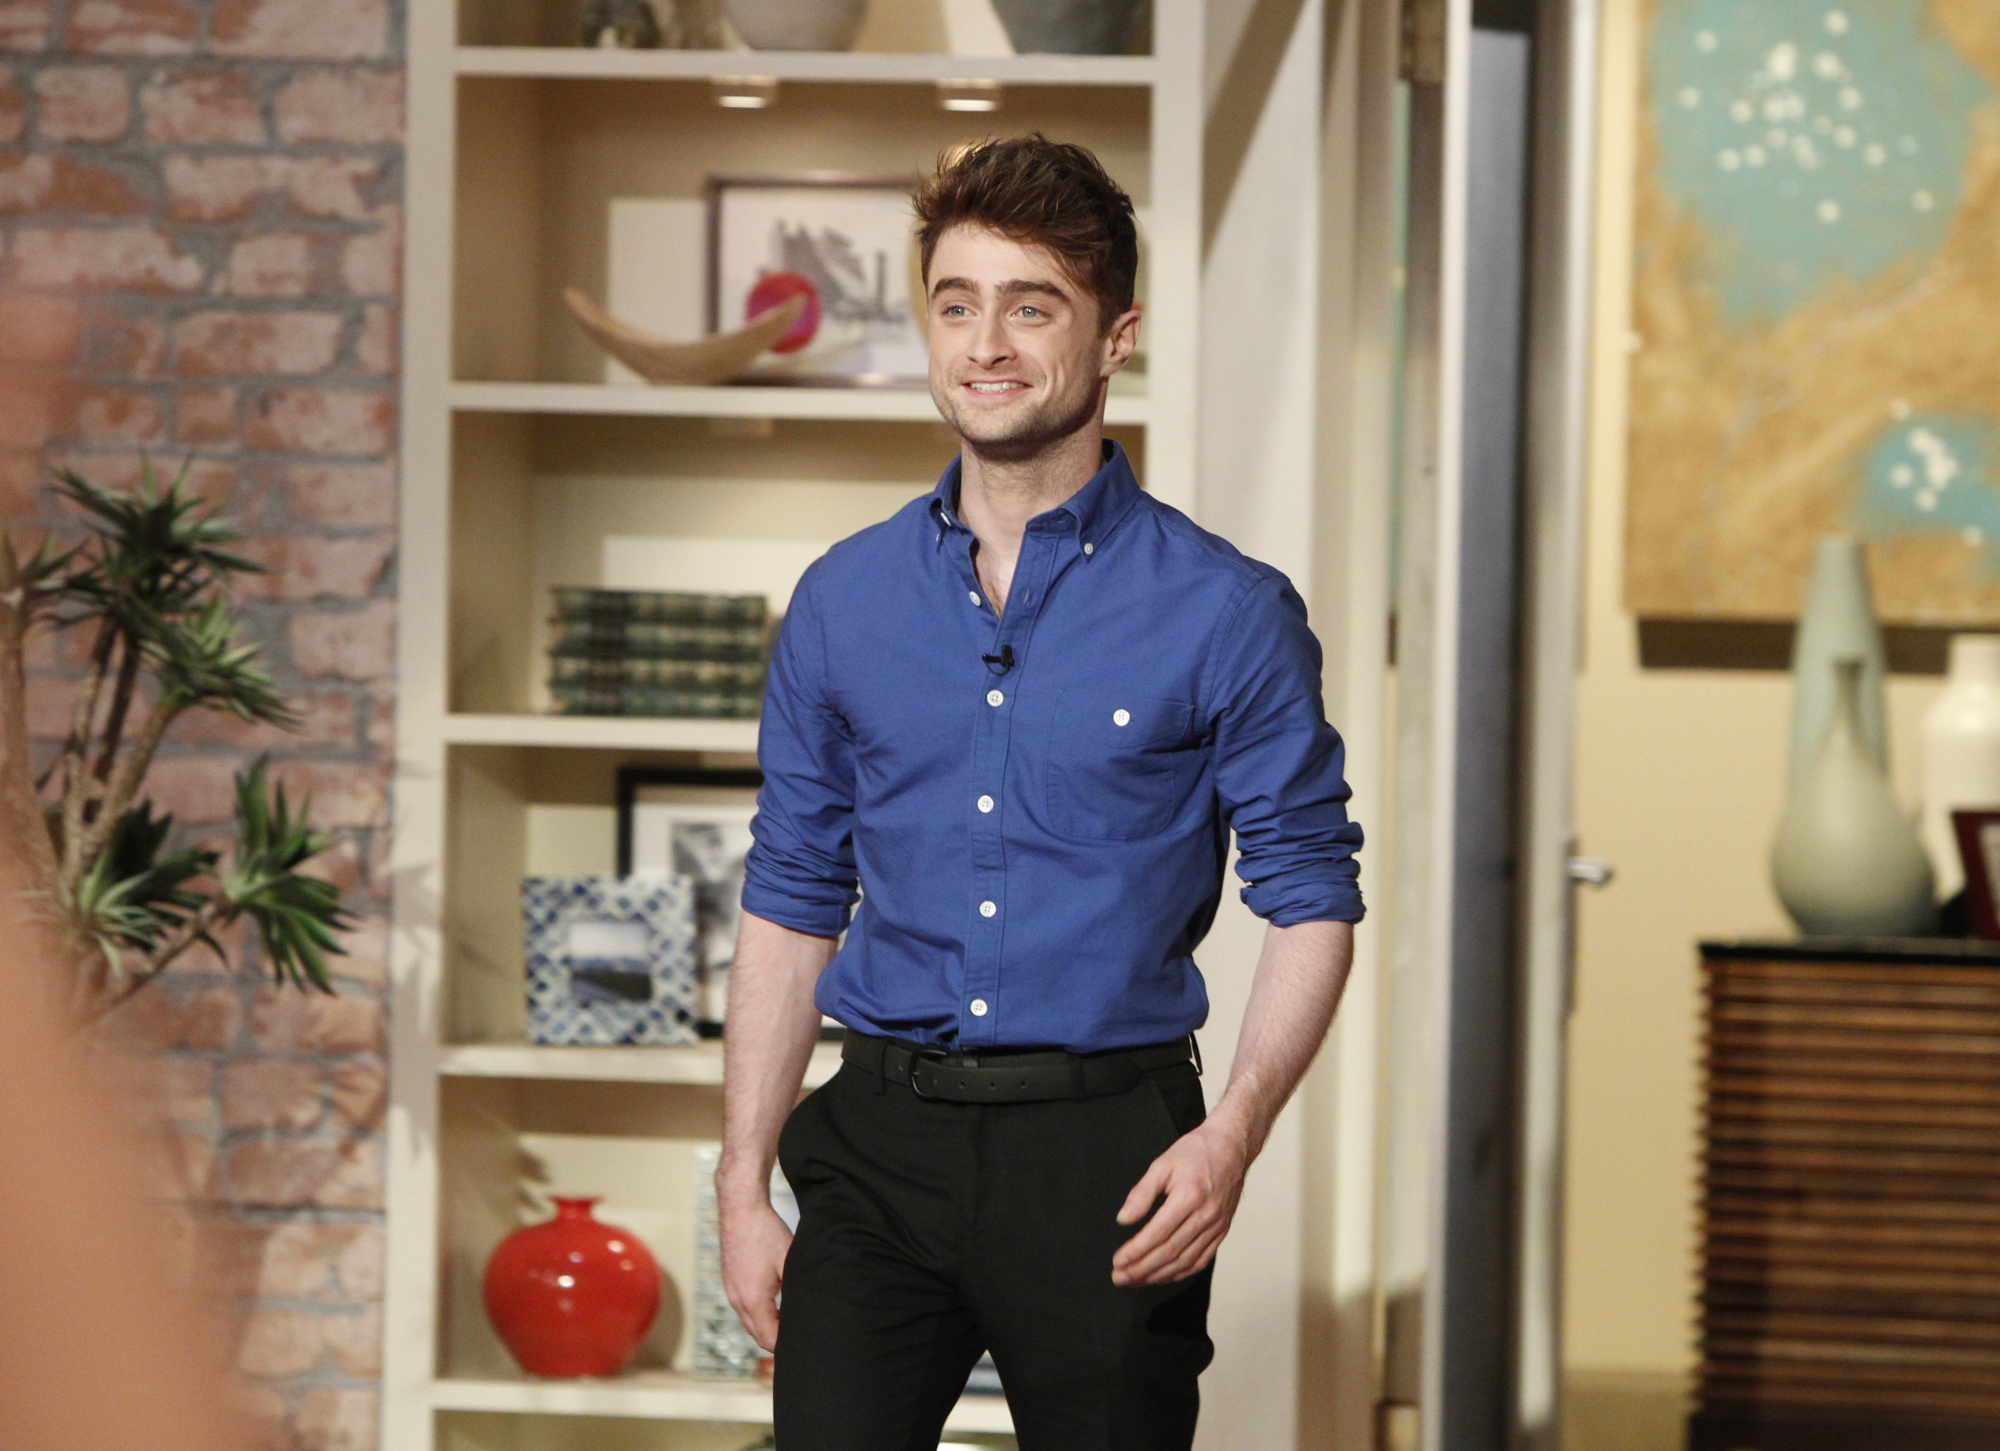 50. Daniel Radcliffe - Actor